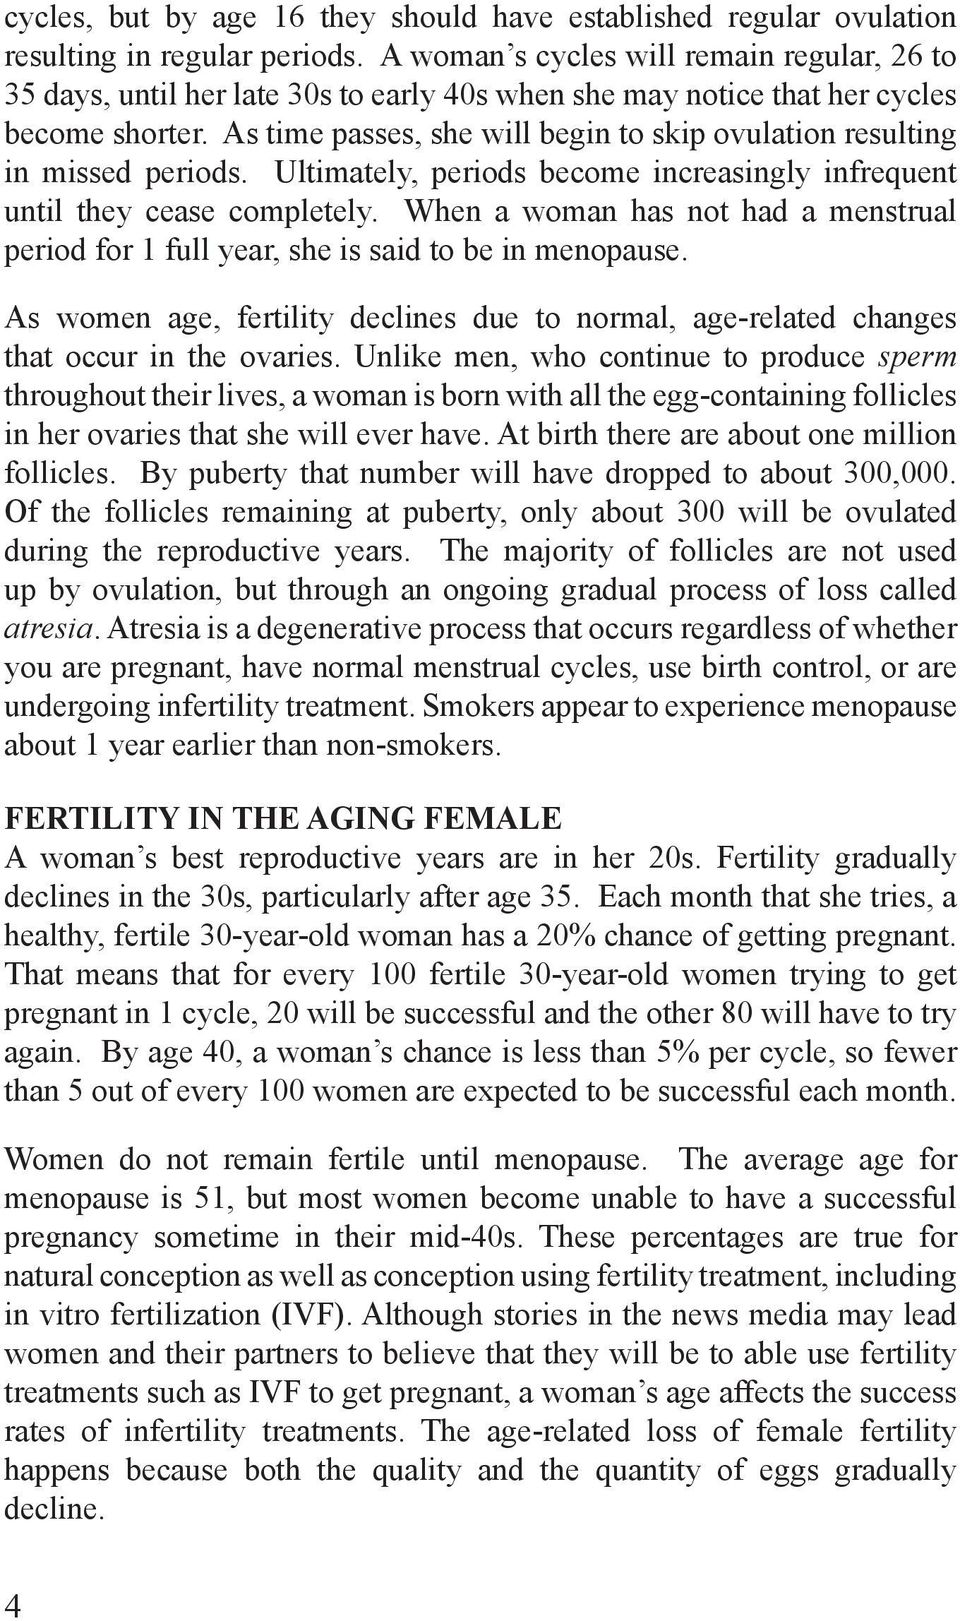 As time passes, she will begin to skip ovulation resulting in missed periods. Ultimately, periods become increasingly infrequent until they cease completely.